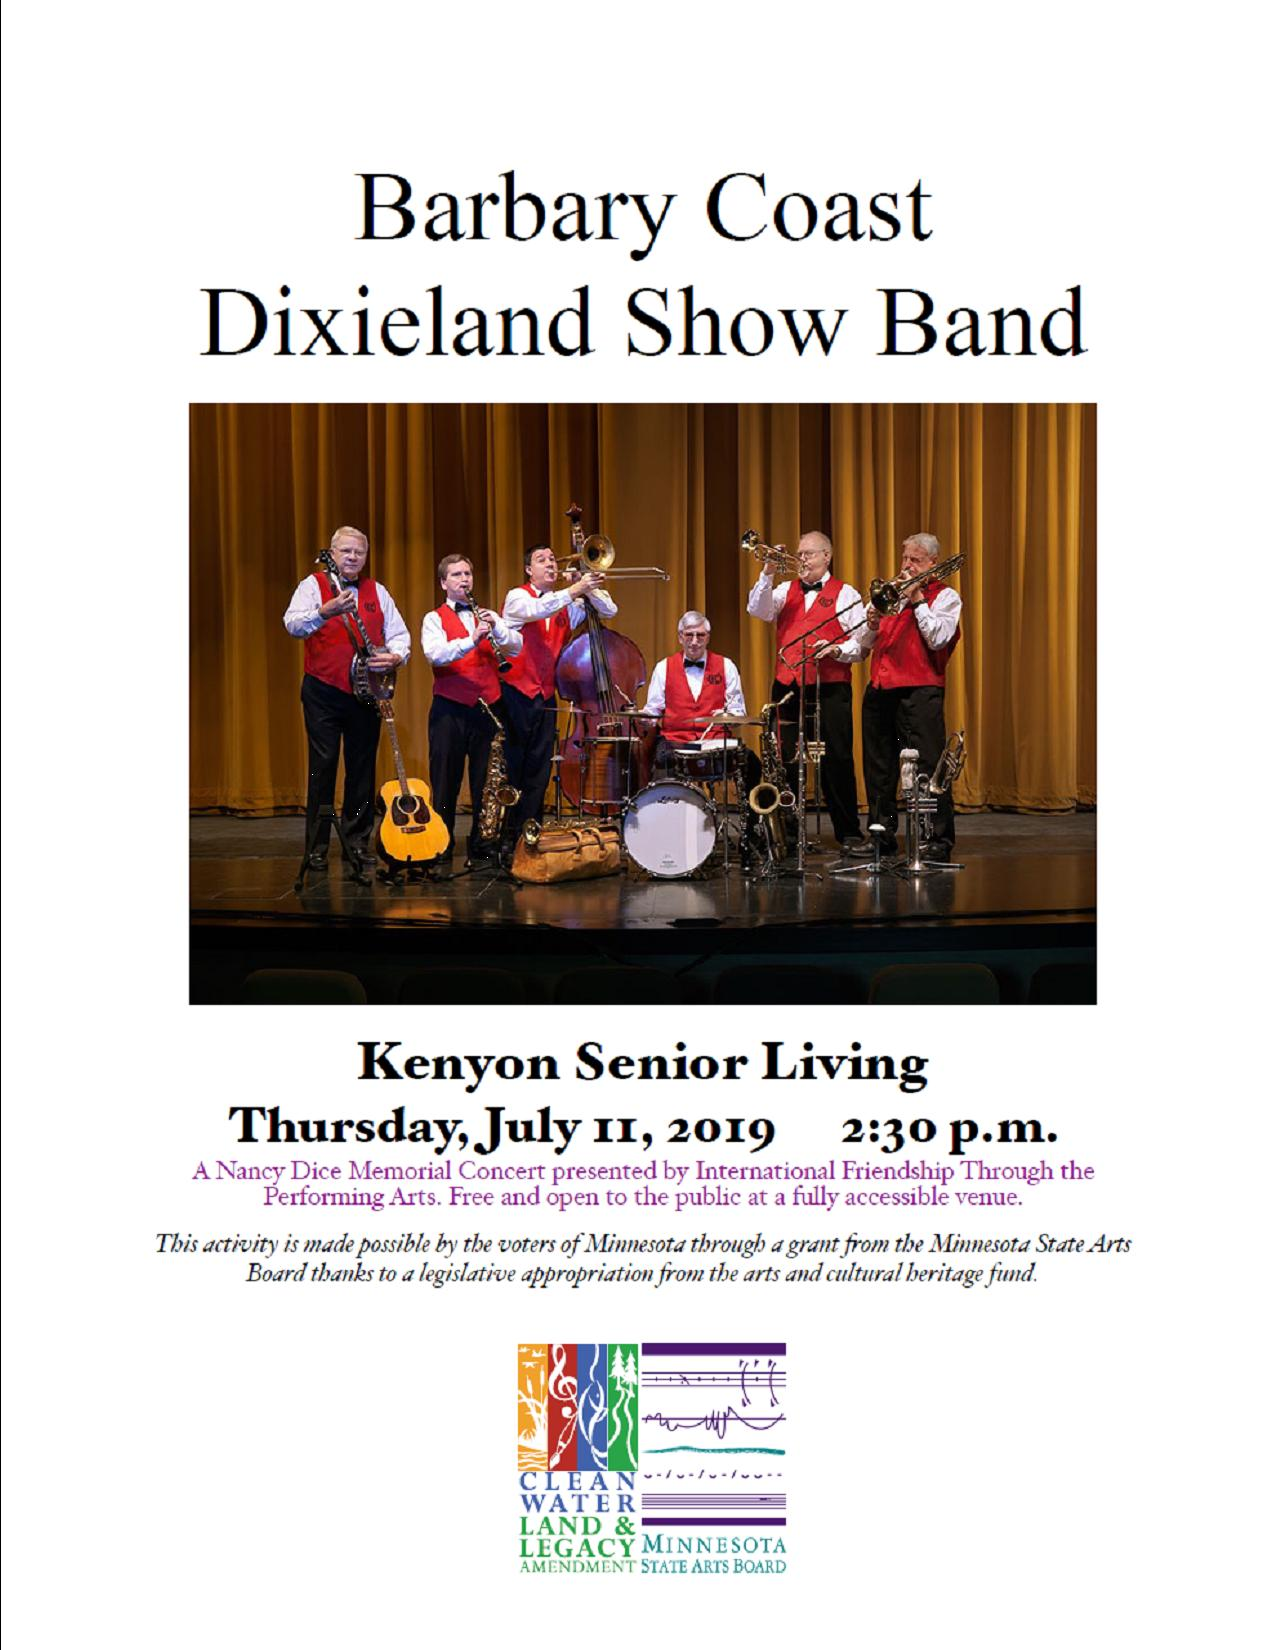 Barbary Coast Dixieland Show Band July 11 @ 2:30 pm